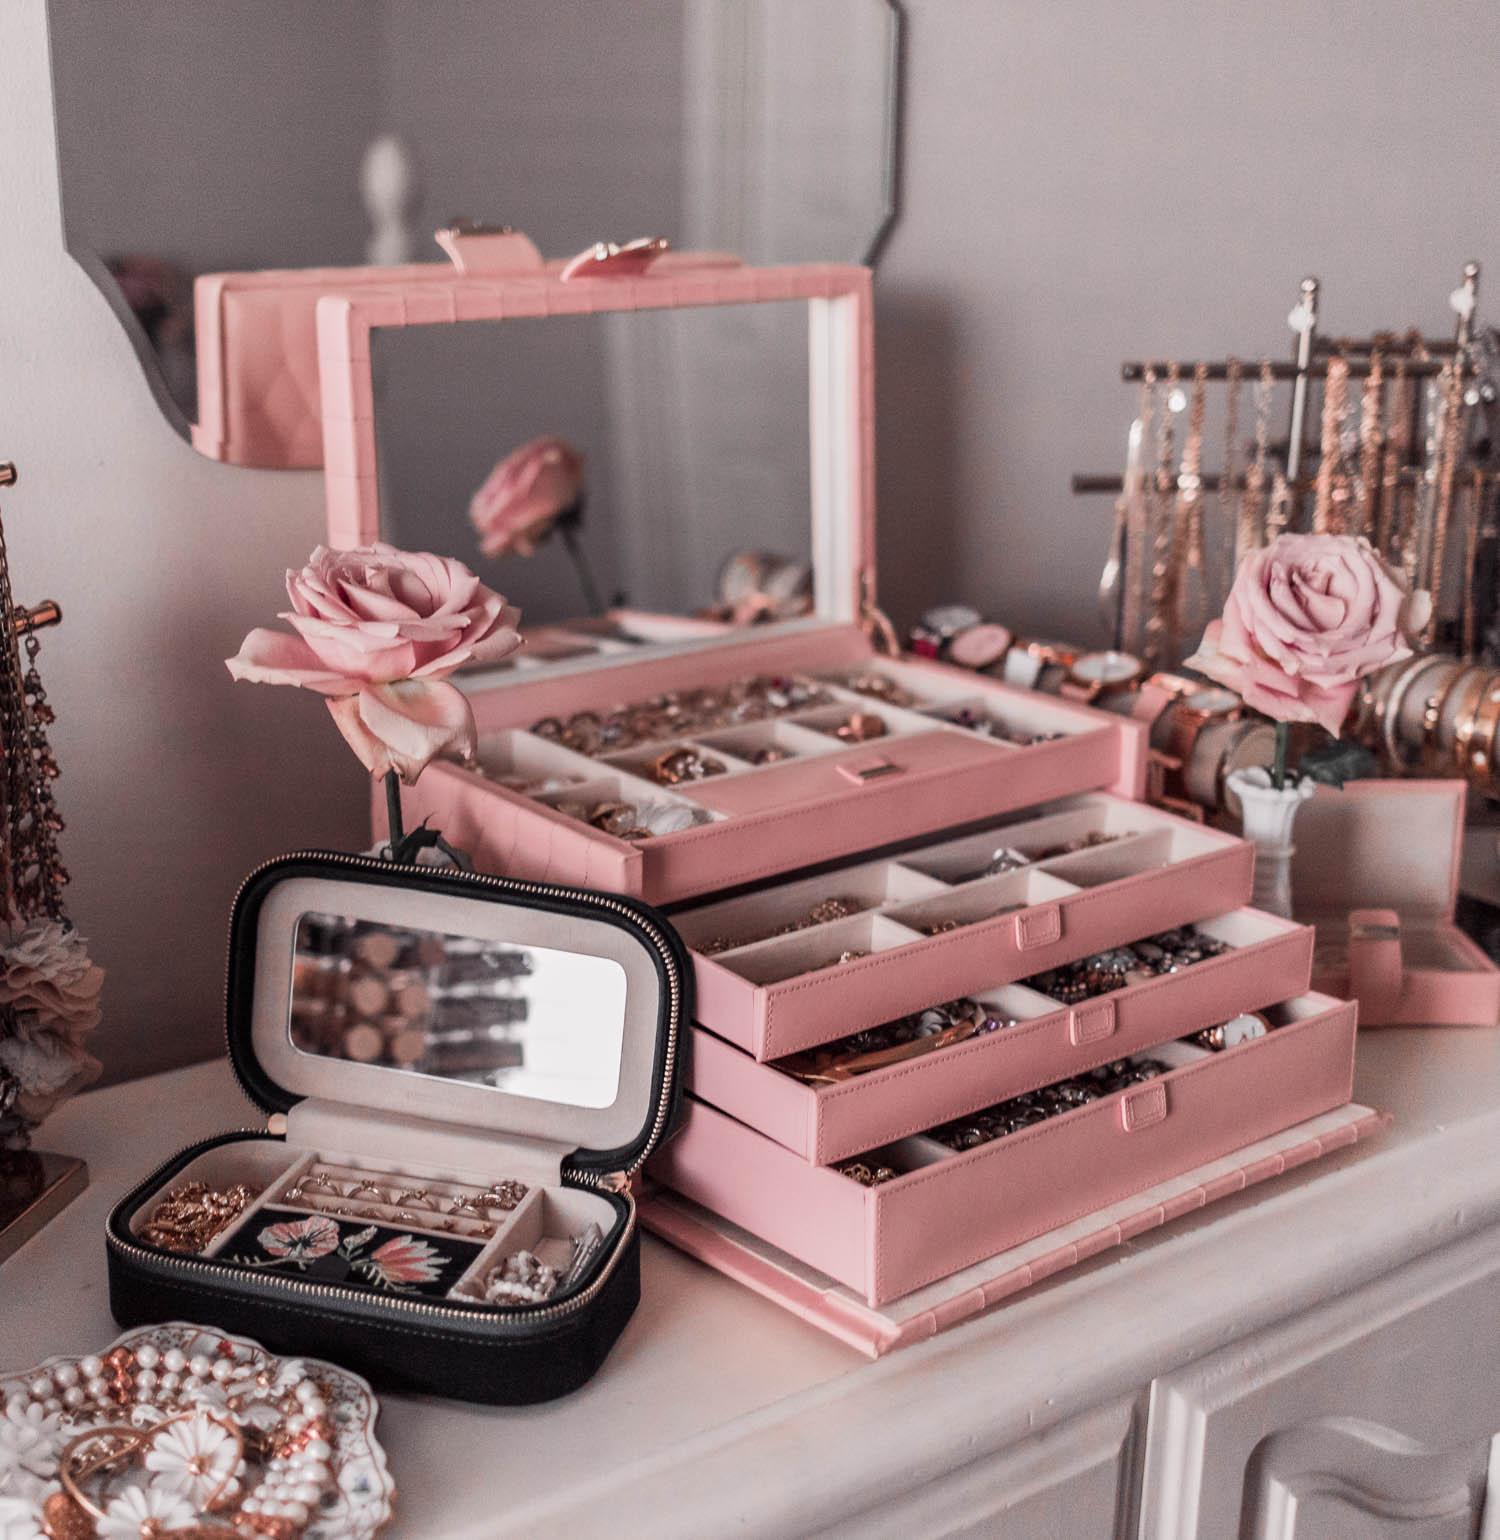 My Girly Jewelry Collection & Pink Jewelry Box